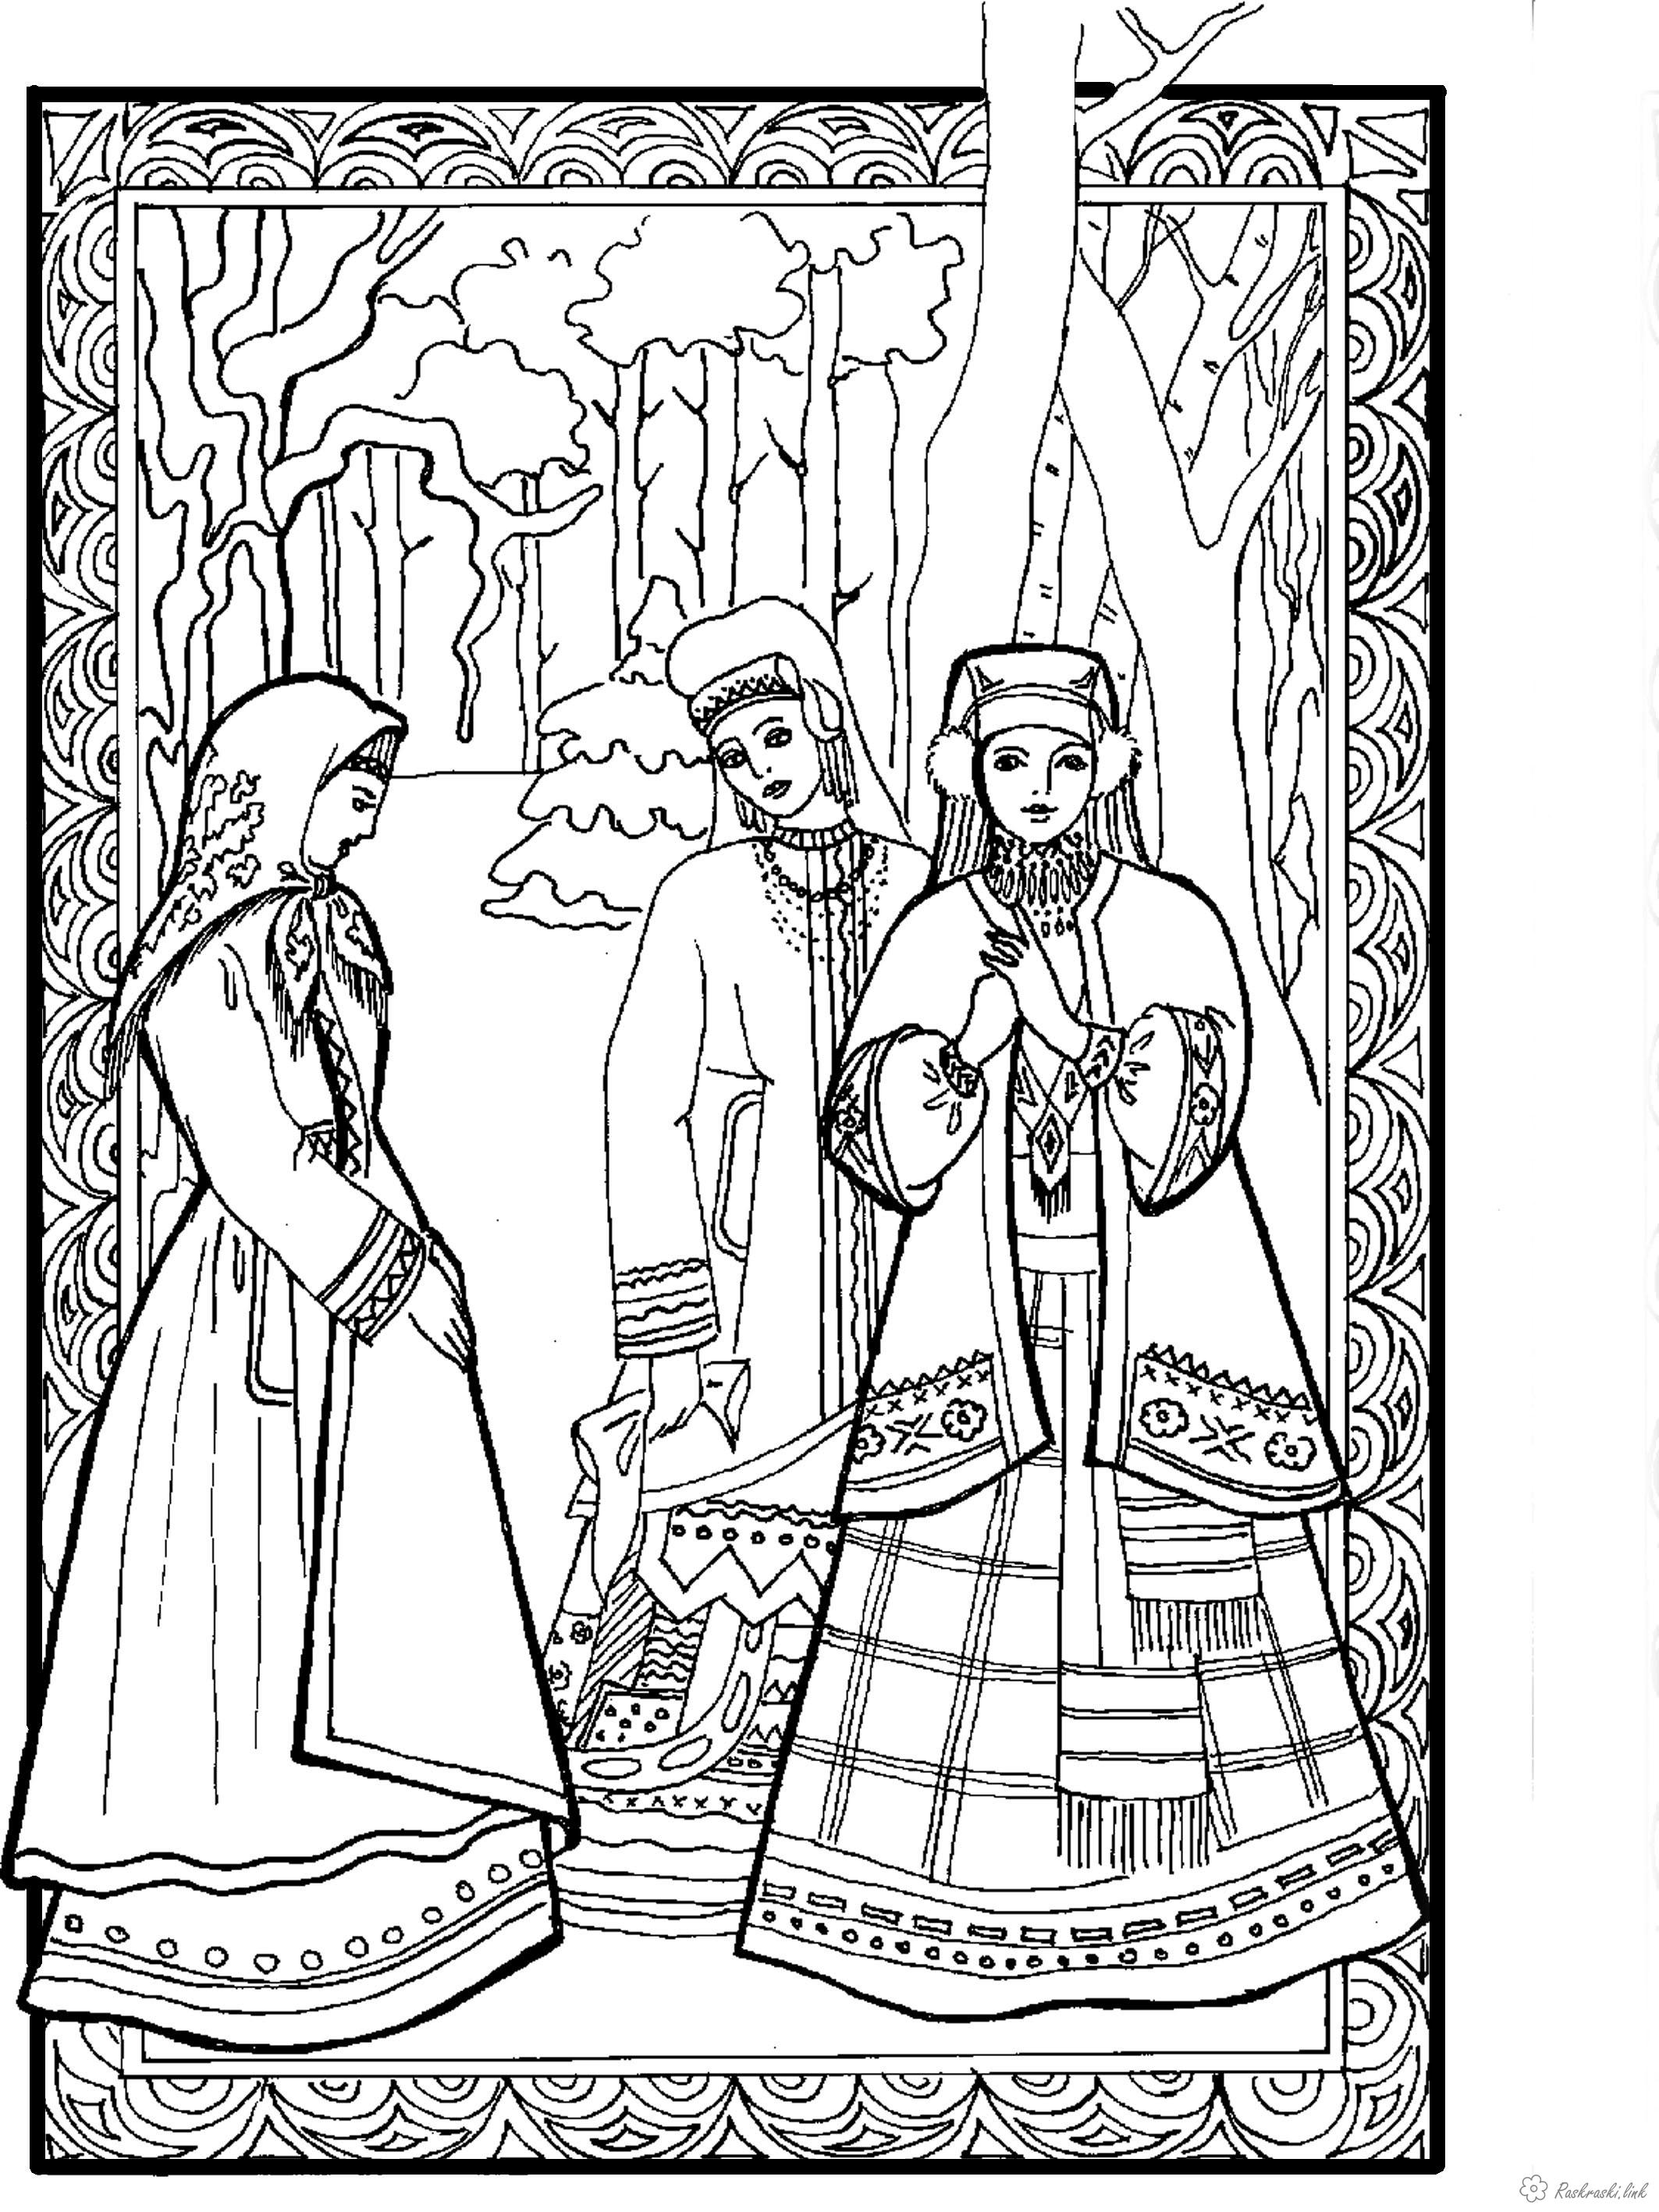 Coloring costumes Kids coloring pages national costumes of ancient Russia